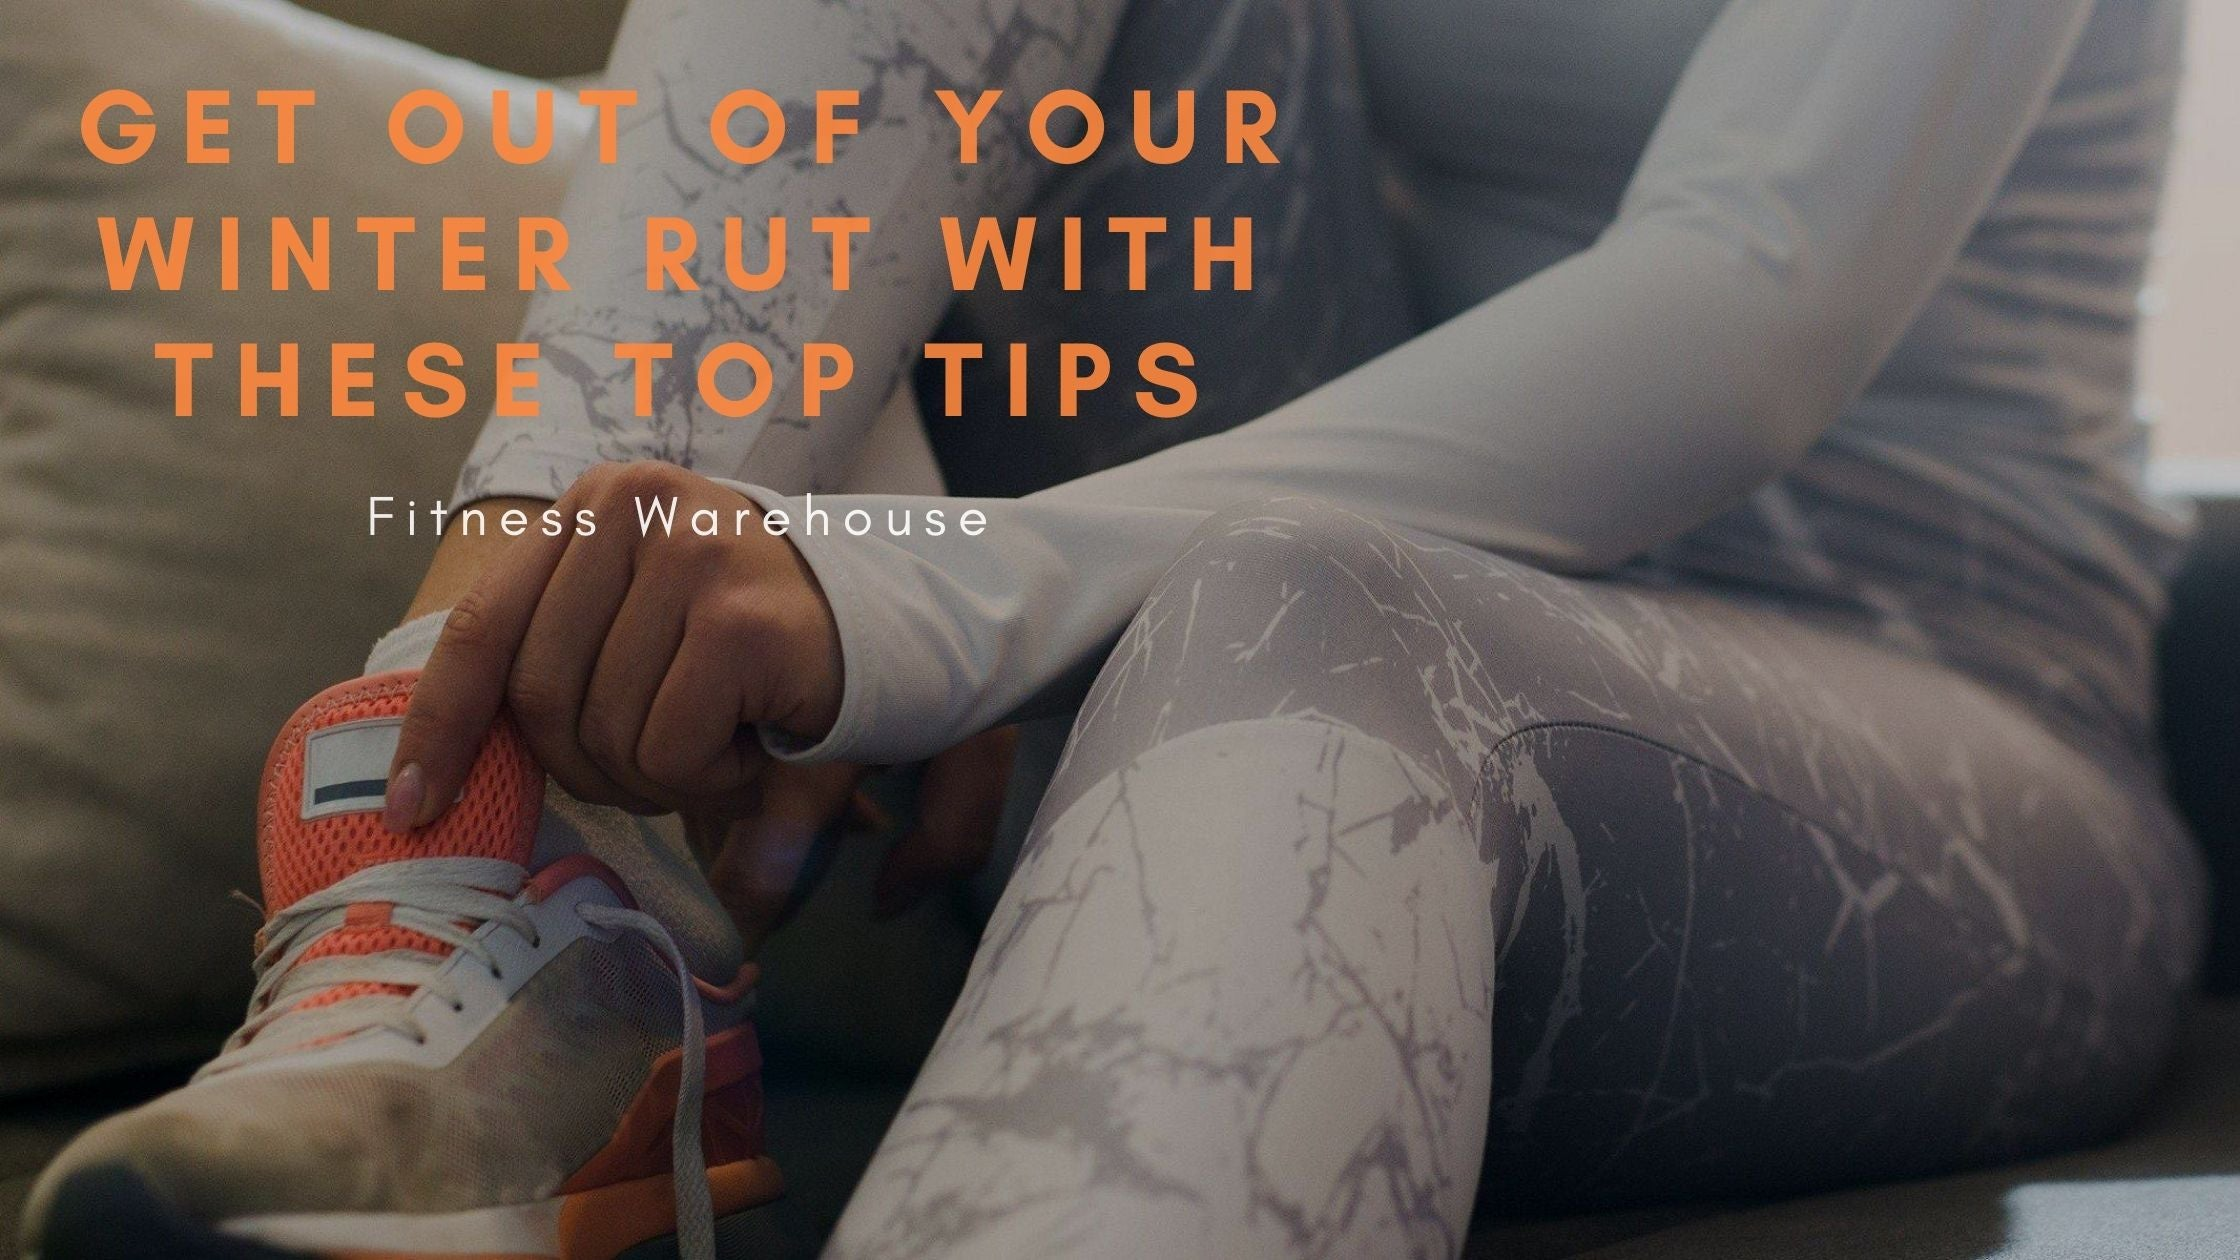 Get out of your winter rut with these top tips